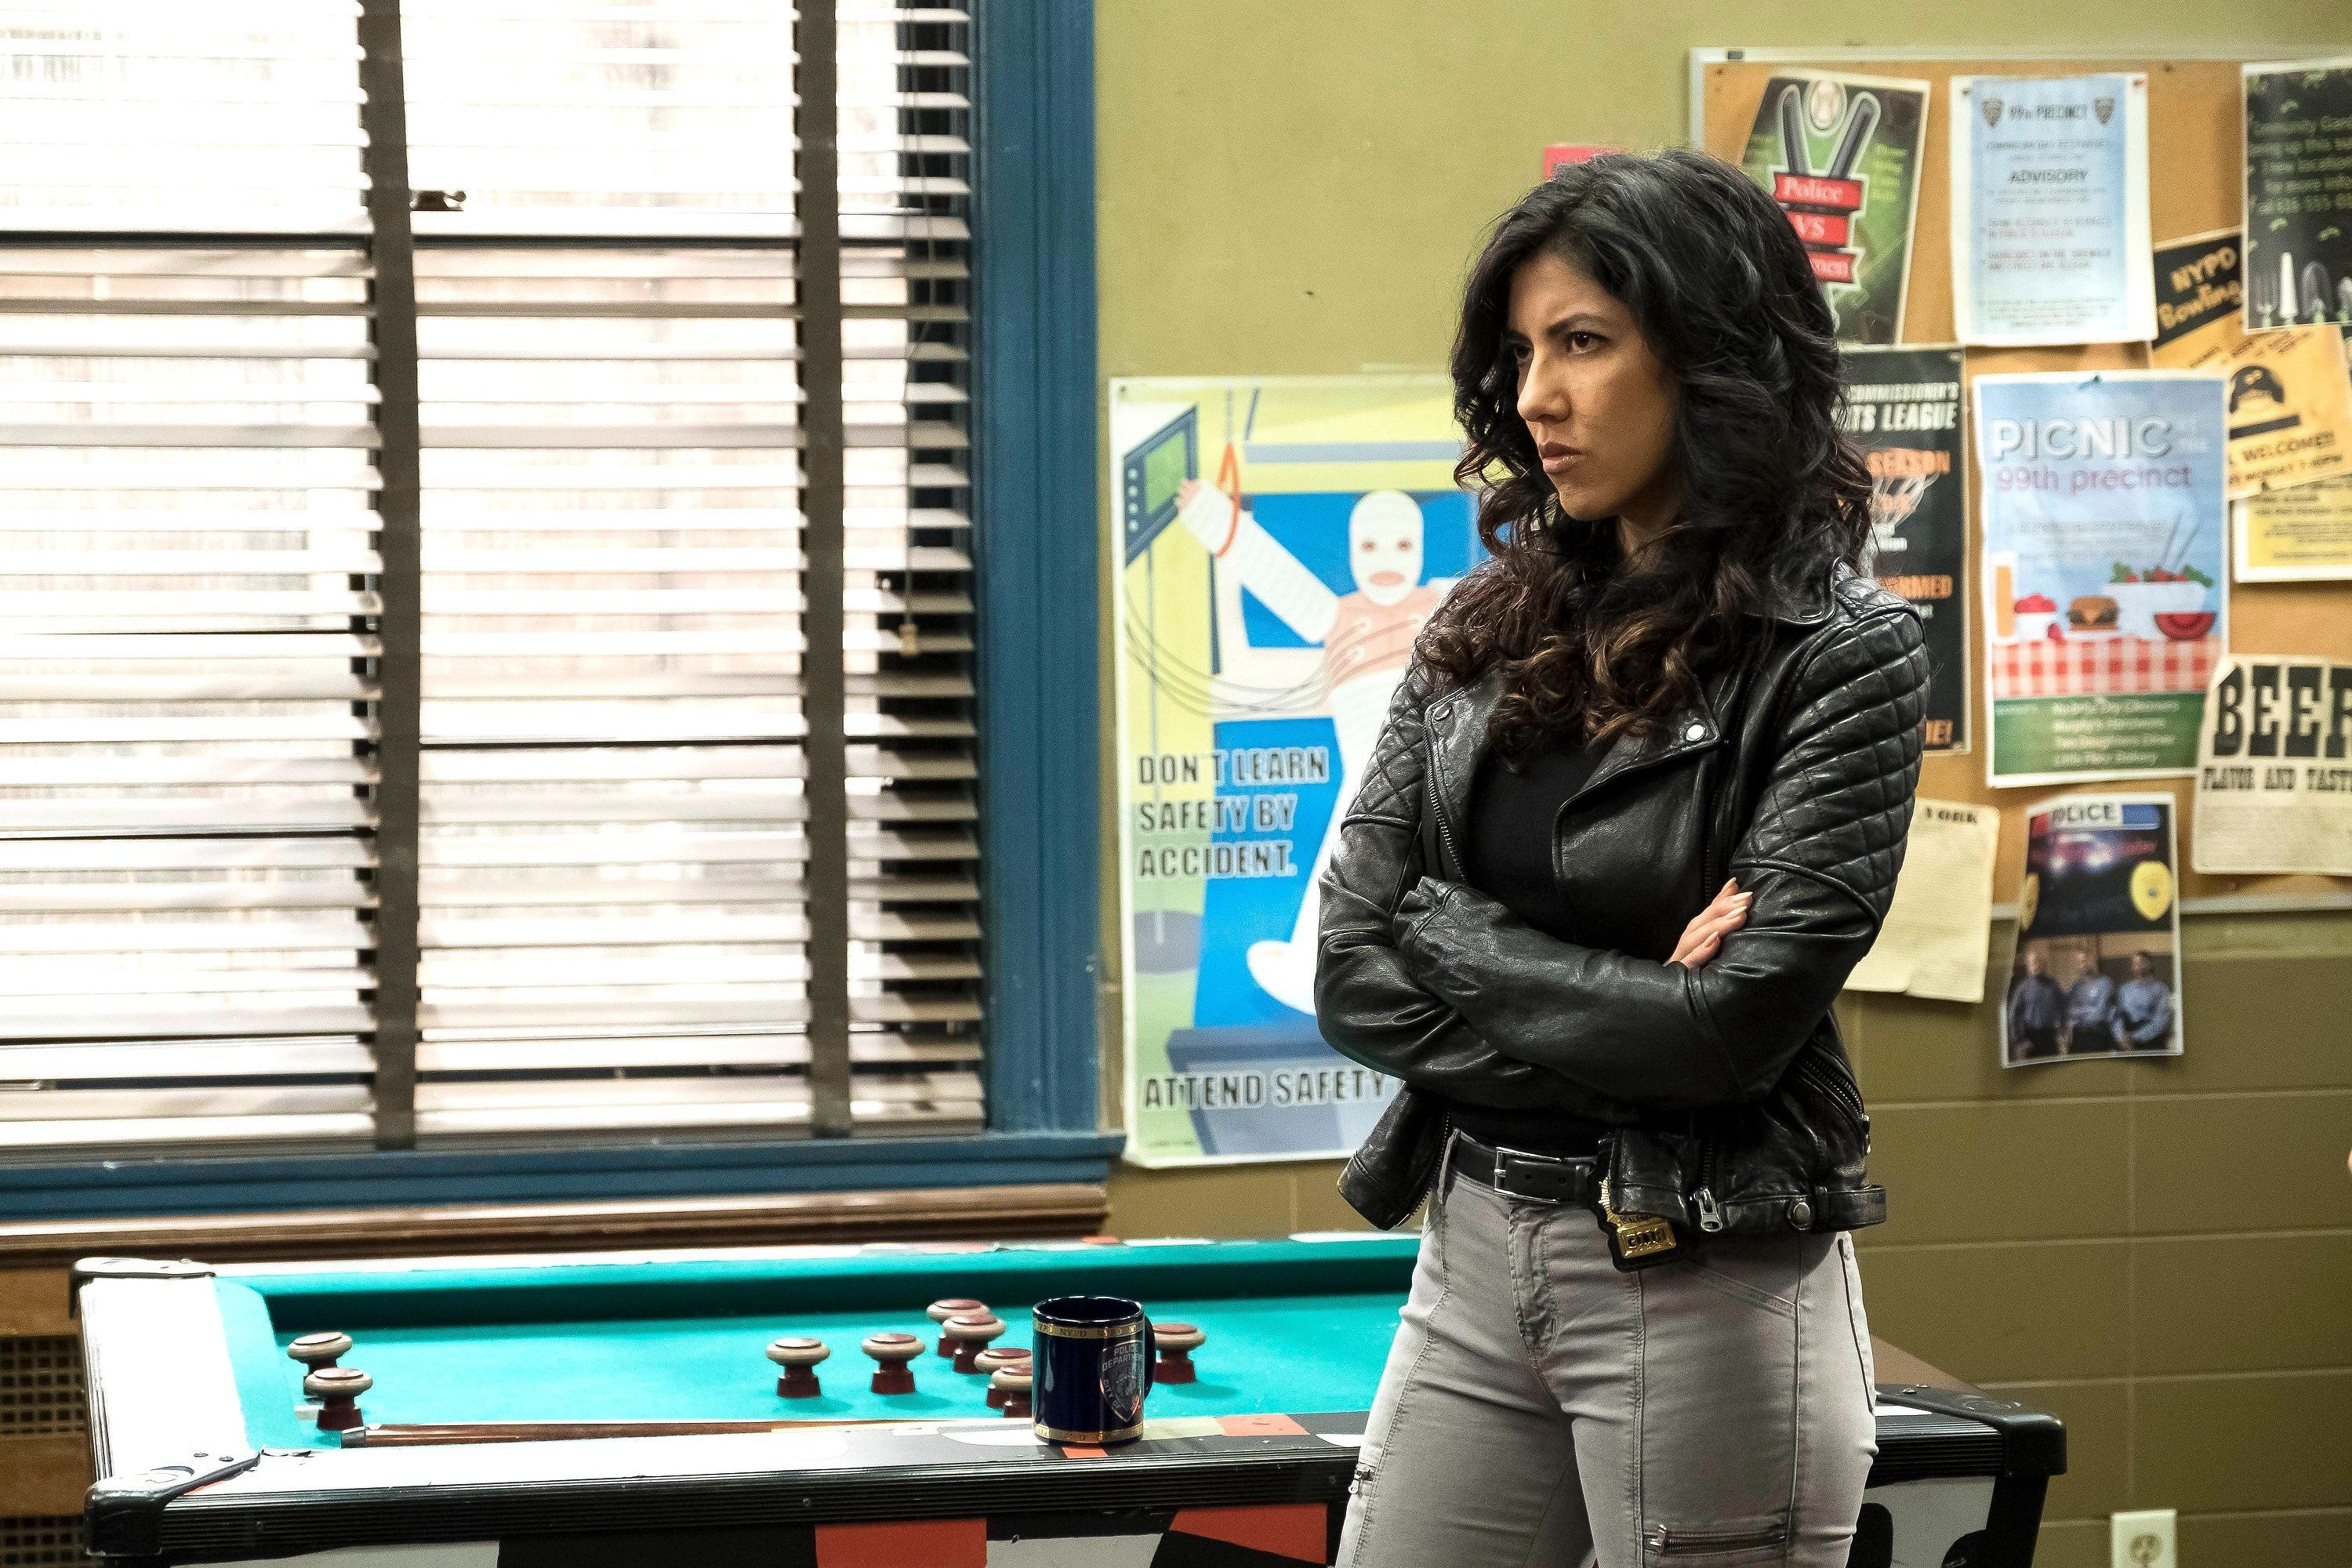 BROOKLYN NINE-NINE: Stephanie Beatriz in the new Moo Moo episode of BROOKLYN NINE-NINE airing Tuesday, May 2 (8:00-8:31 PM ET/PT) on FOX.  (Photo by FOX via Getty Images)